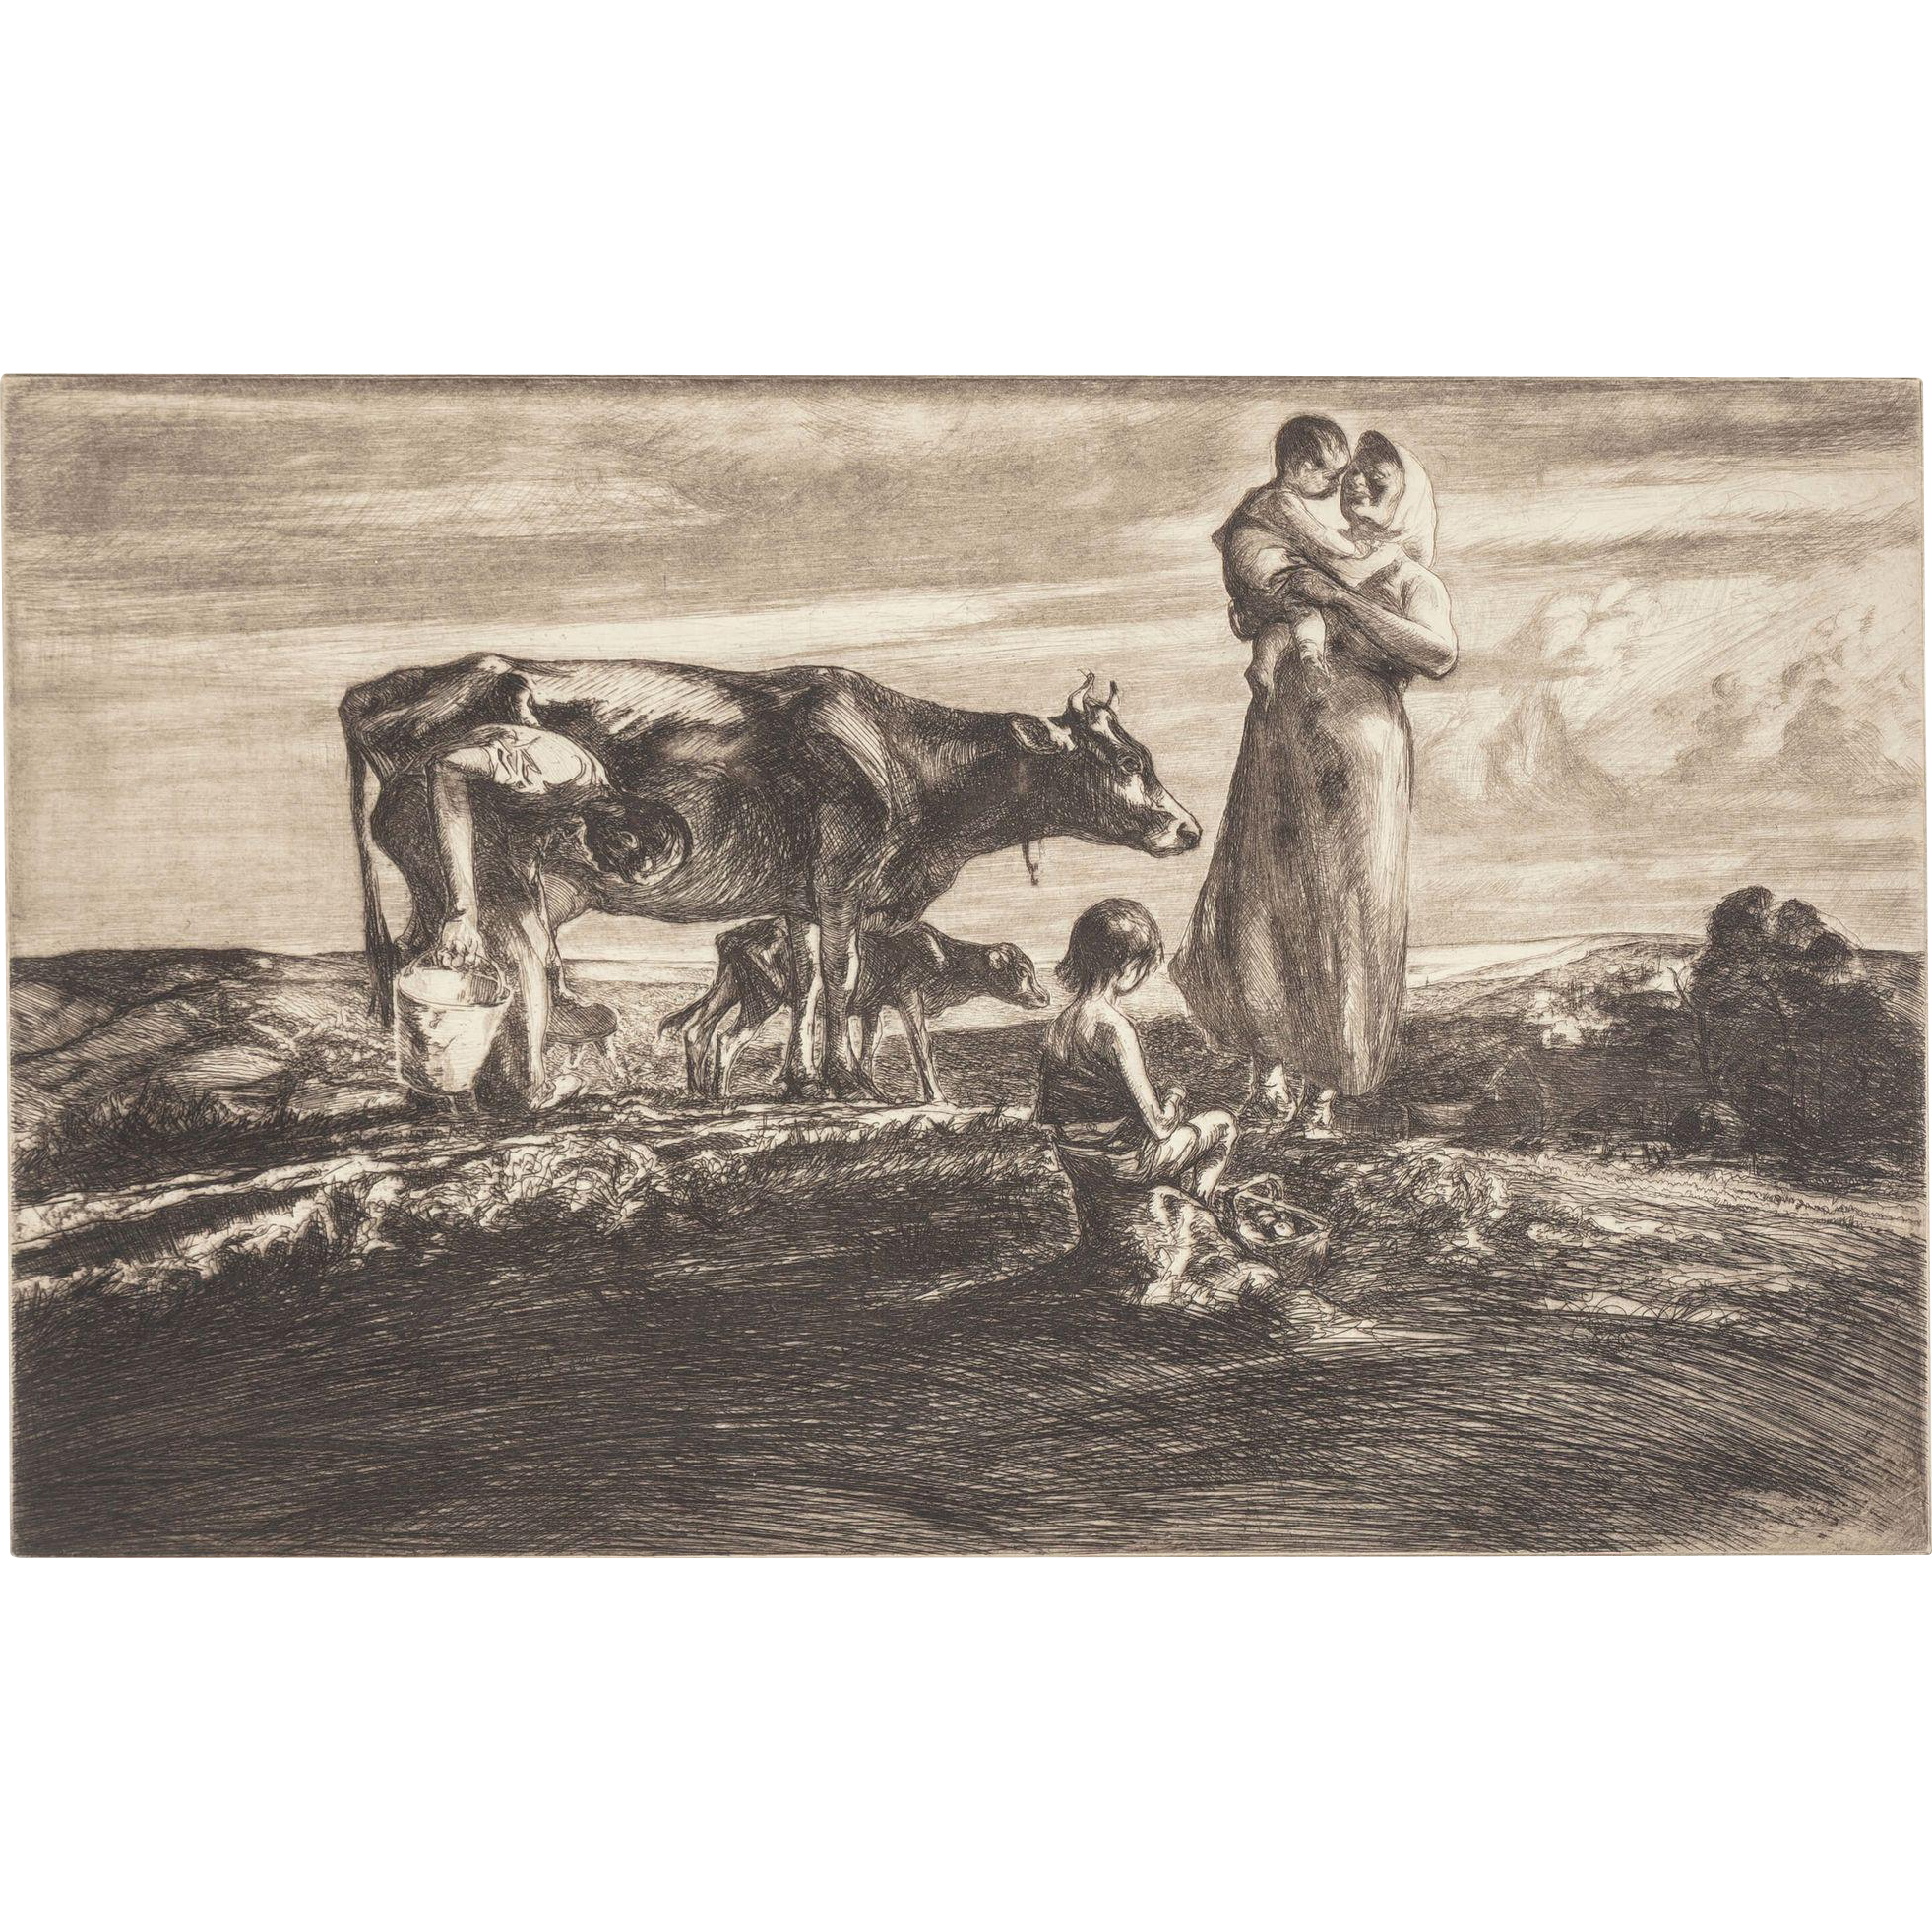 """JOHN E. COSTIGAN  (American, 1888-1972) - Signed Limited Edition Etching """"Figures With Cow"""""""